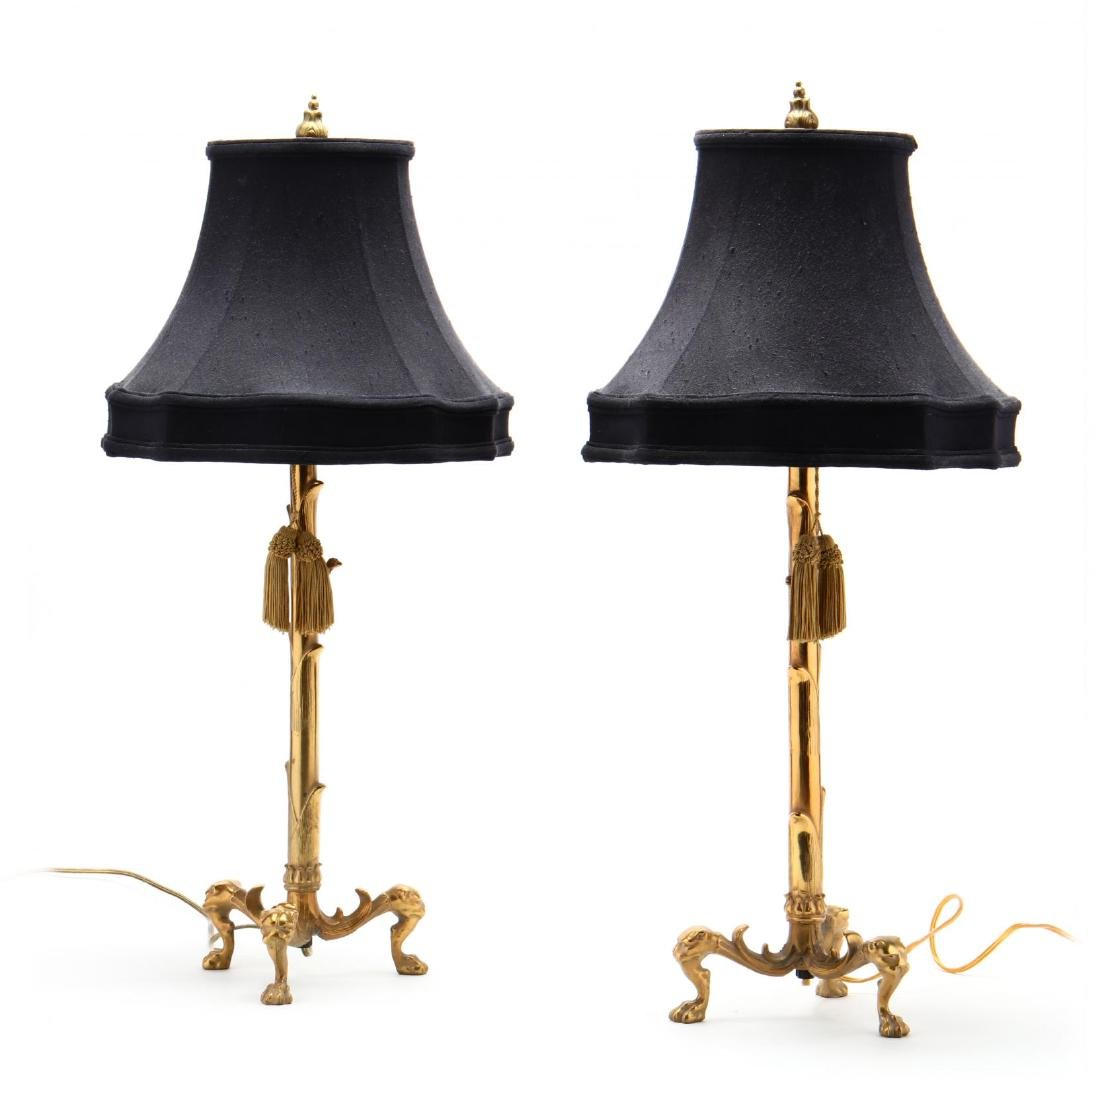 Pair of Continental Naturalistic Brass Table Lamps - 4